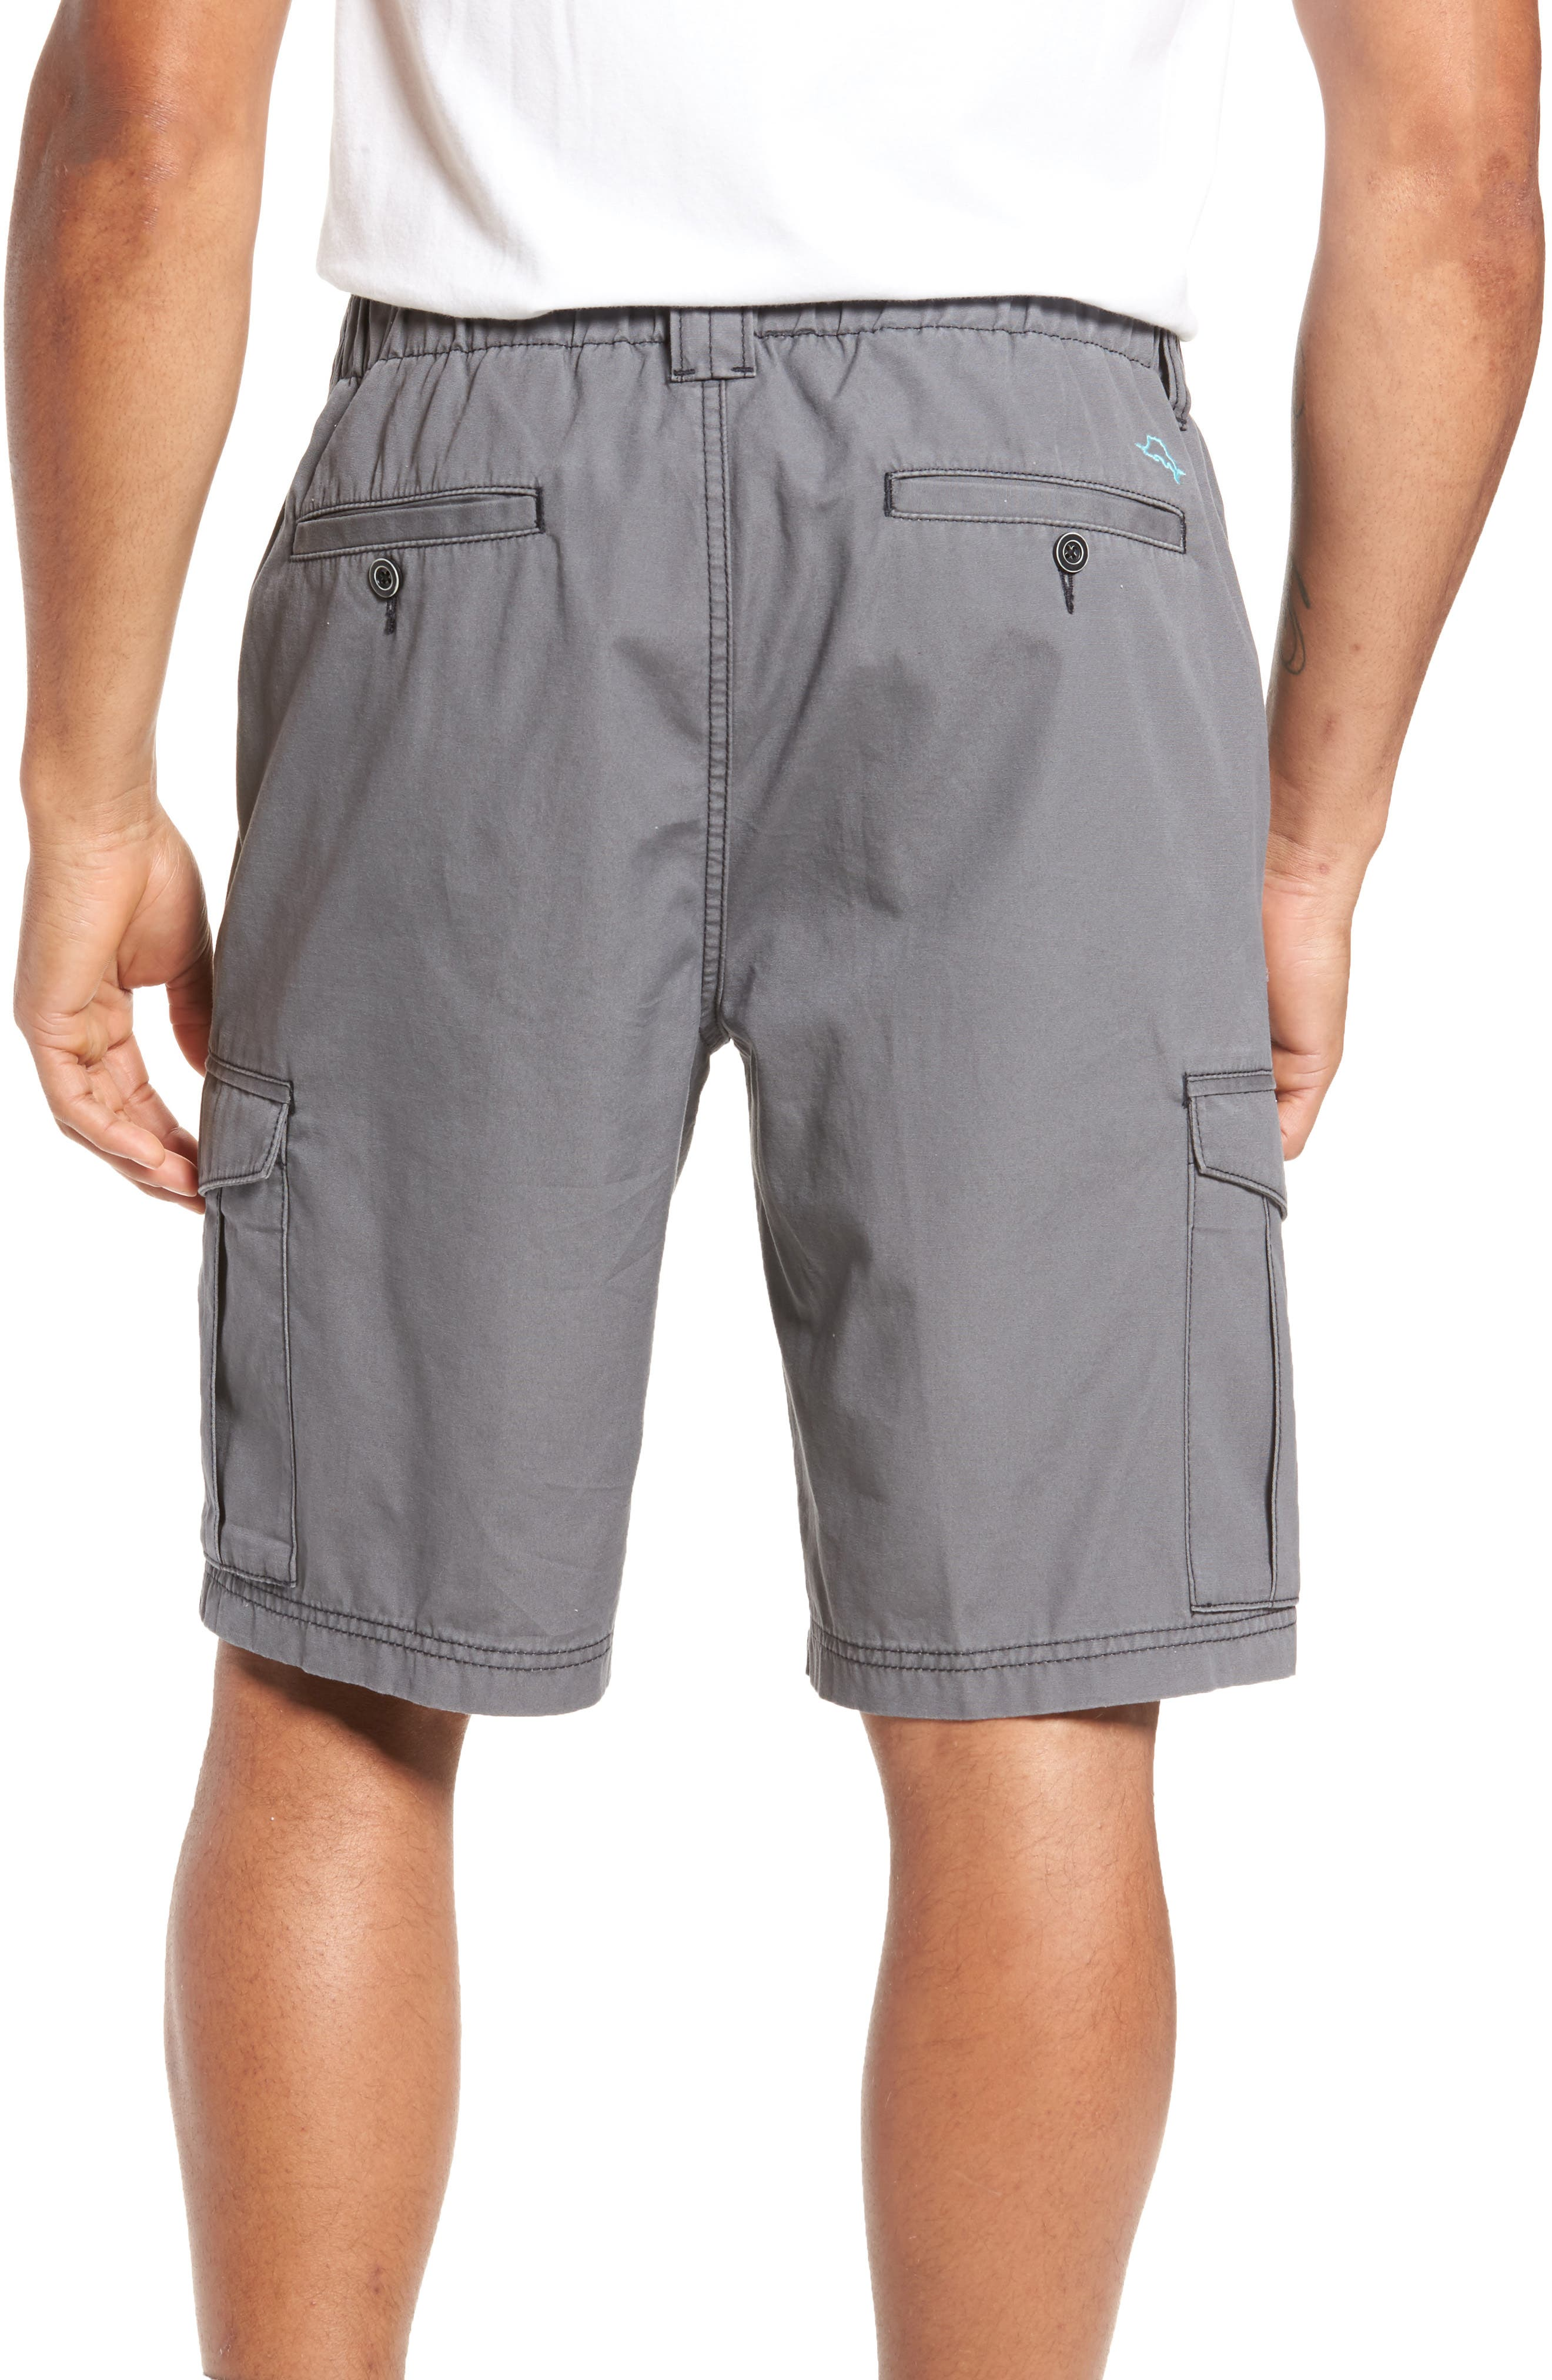 Island Survivalist Cargo Shorts,                             Alternate thumbnail 2, color,                             Fog Grey